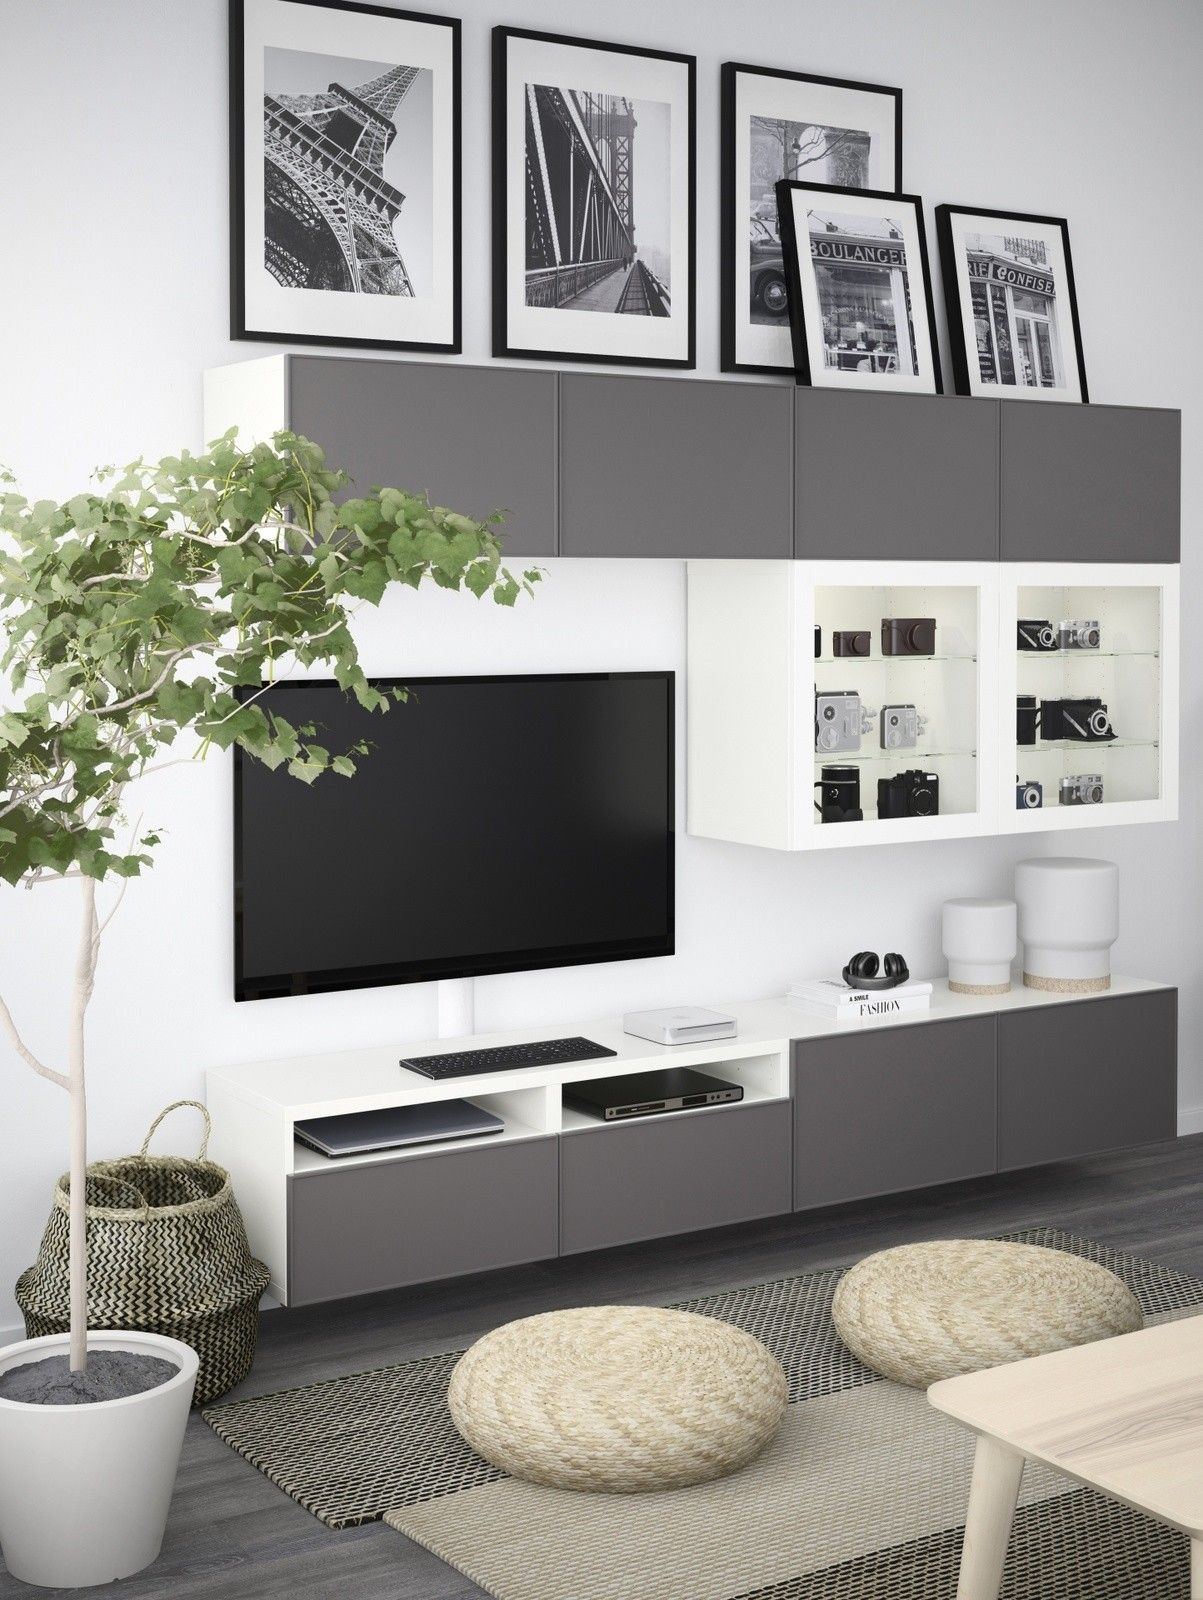 mur besta mieszkanko pinterest sal n mueble tv y tv. Black Bedroom Furniture Sets. Home Design Ideas